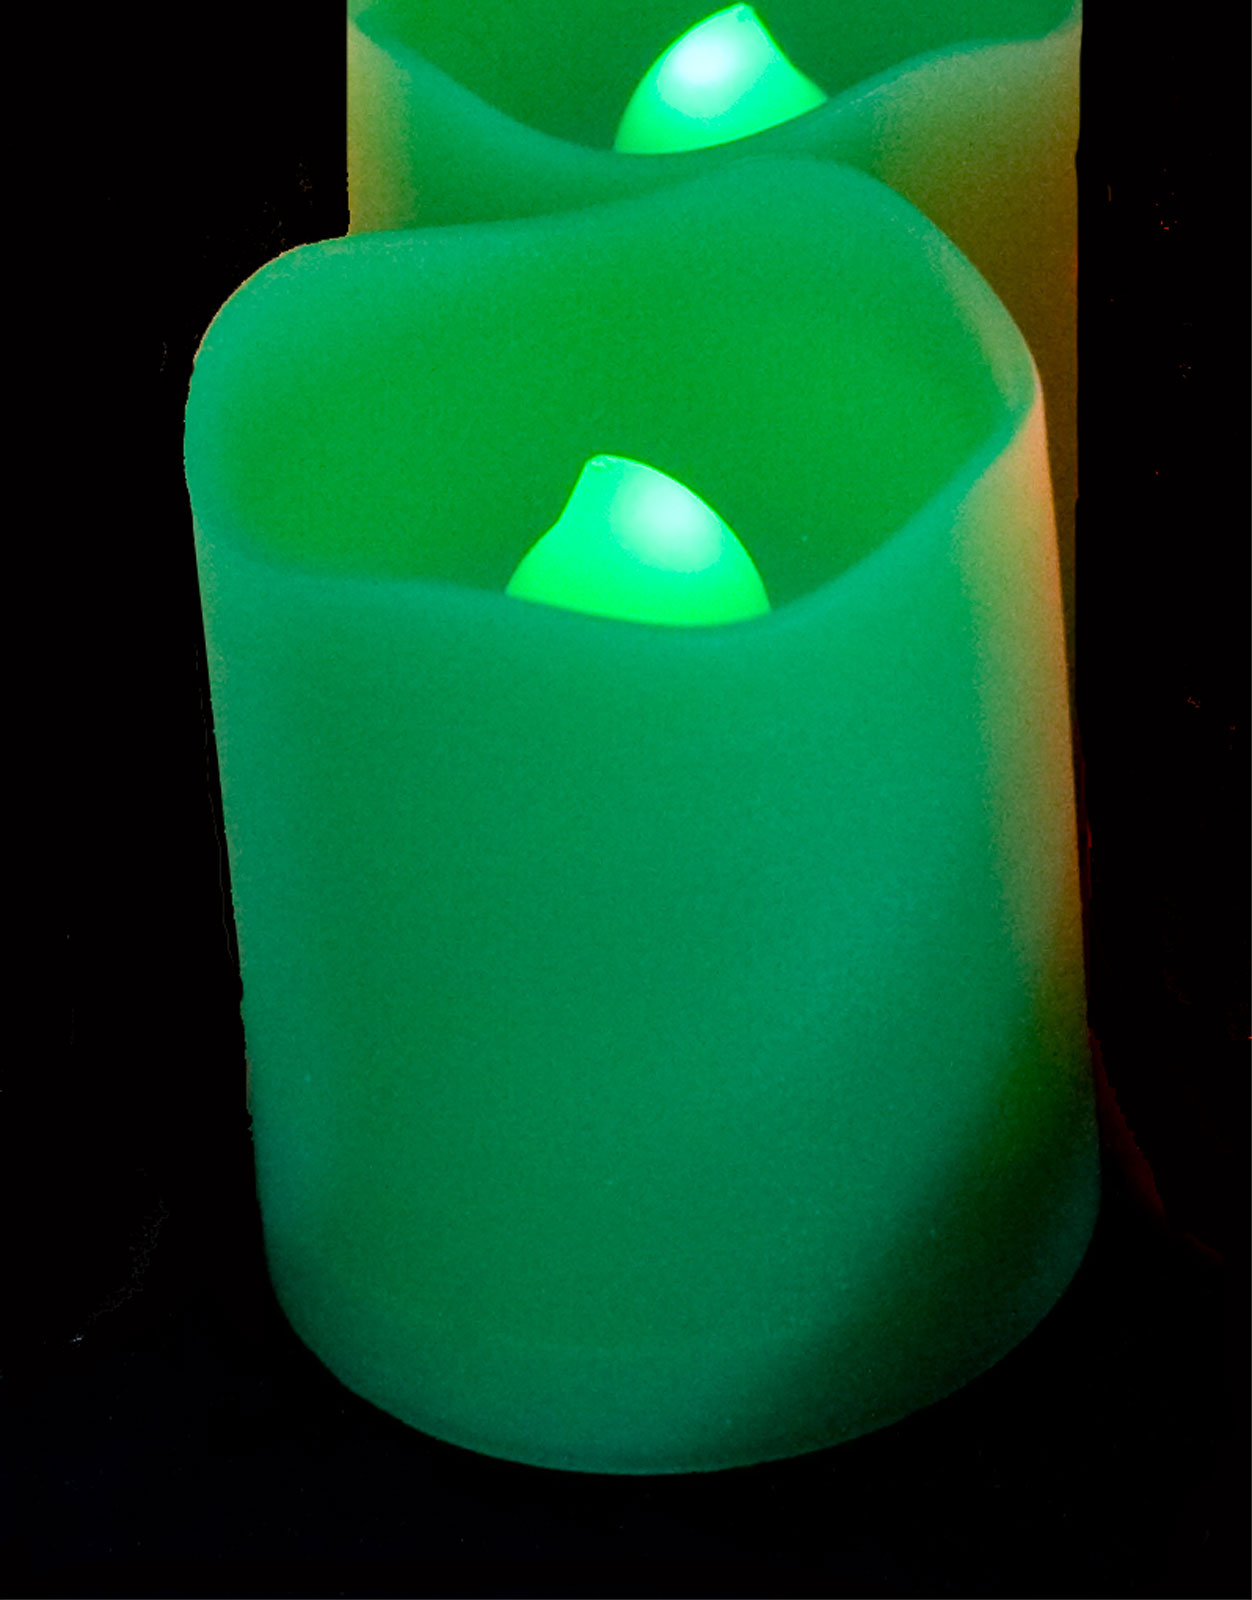 Candle Choice Remote Controlled Round Melted Edge Votive Flameless LED Candle - Set of 12 at Sears.com